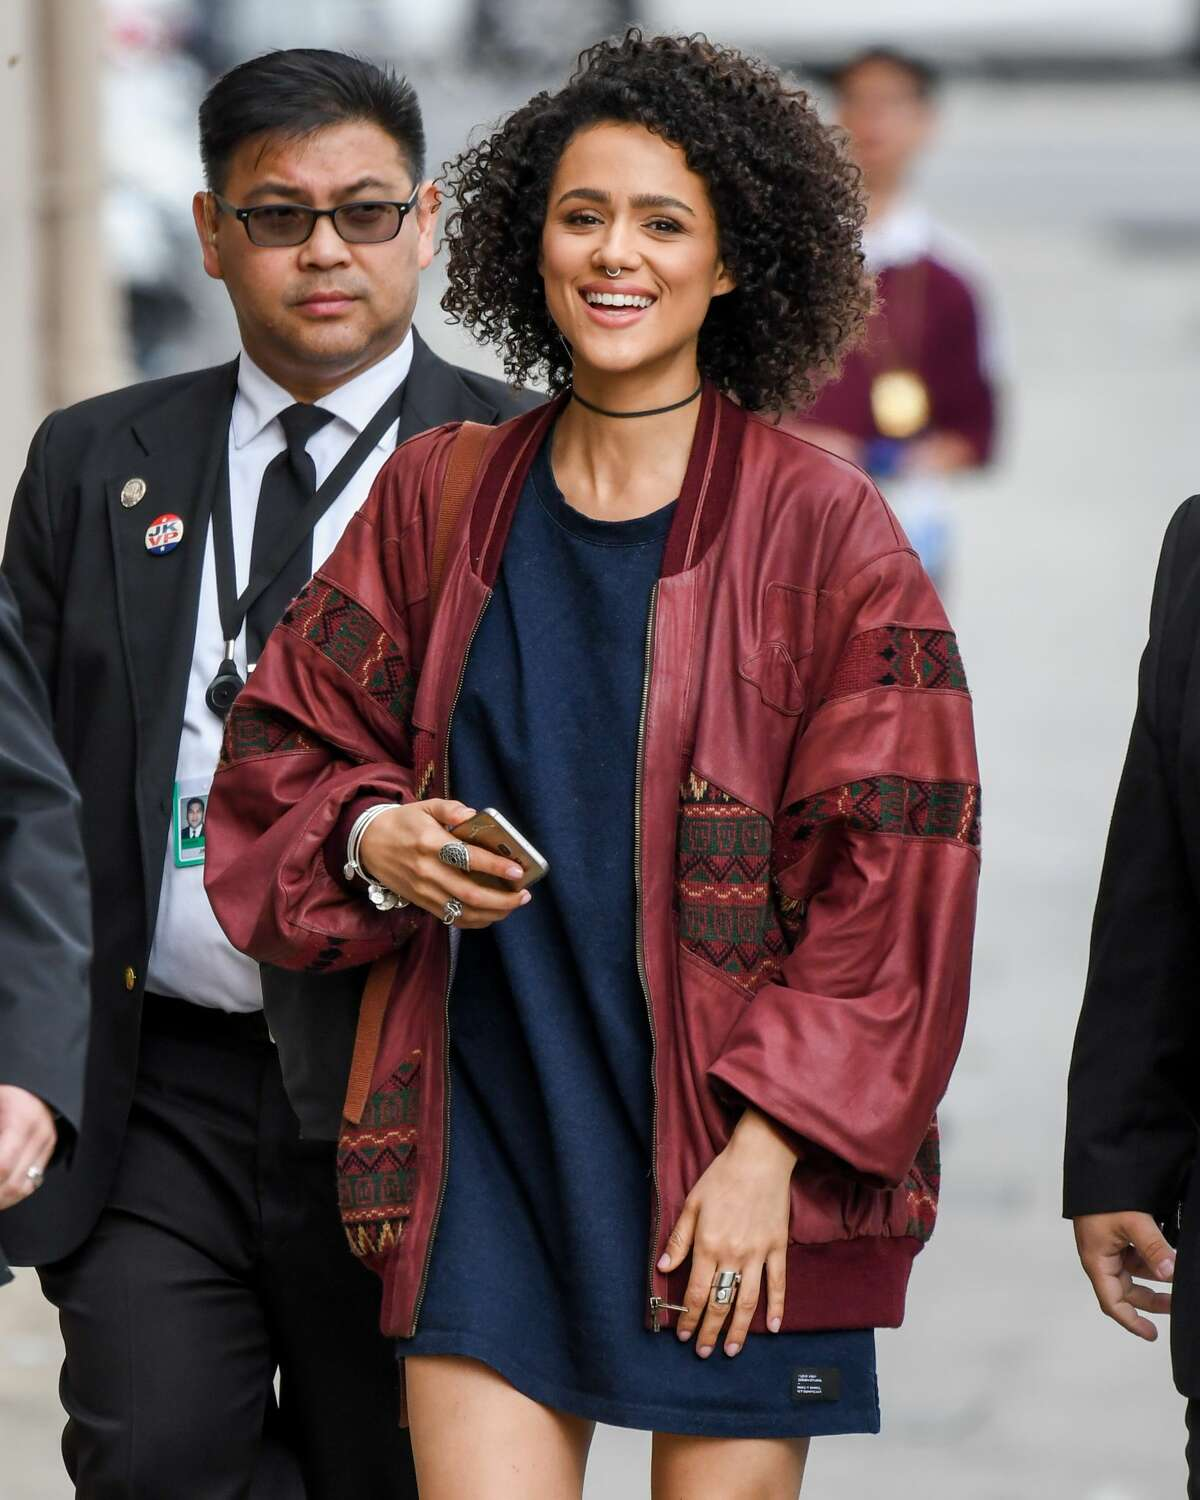 Nathalie Emmanuel does it right by making this vinatge-looking jacket the focus of the outfit.